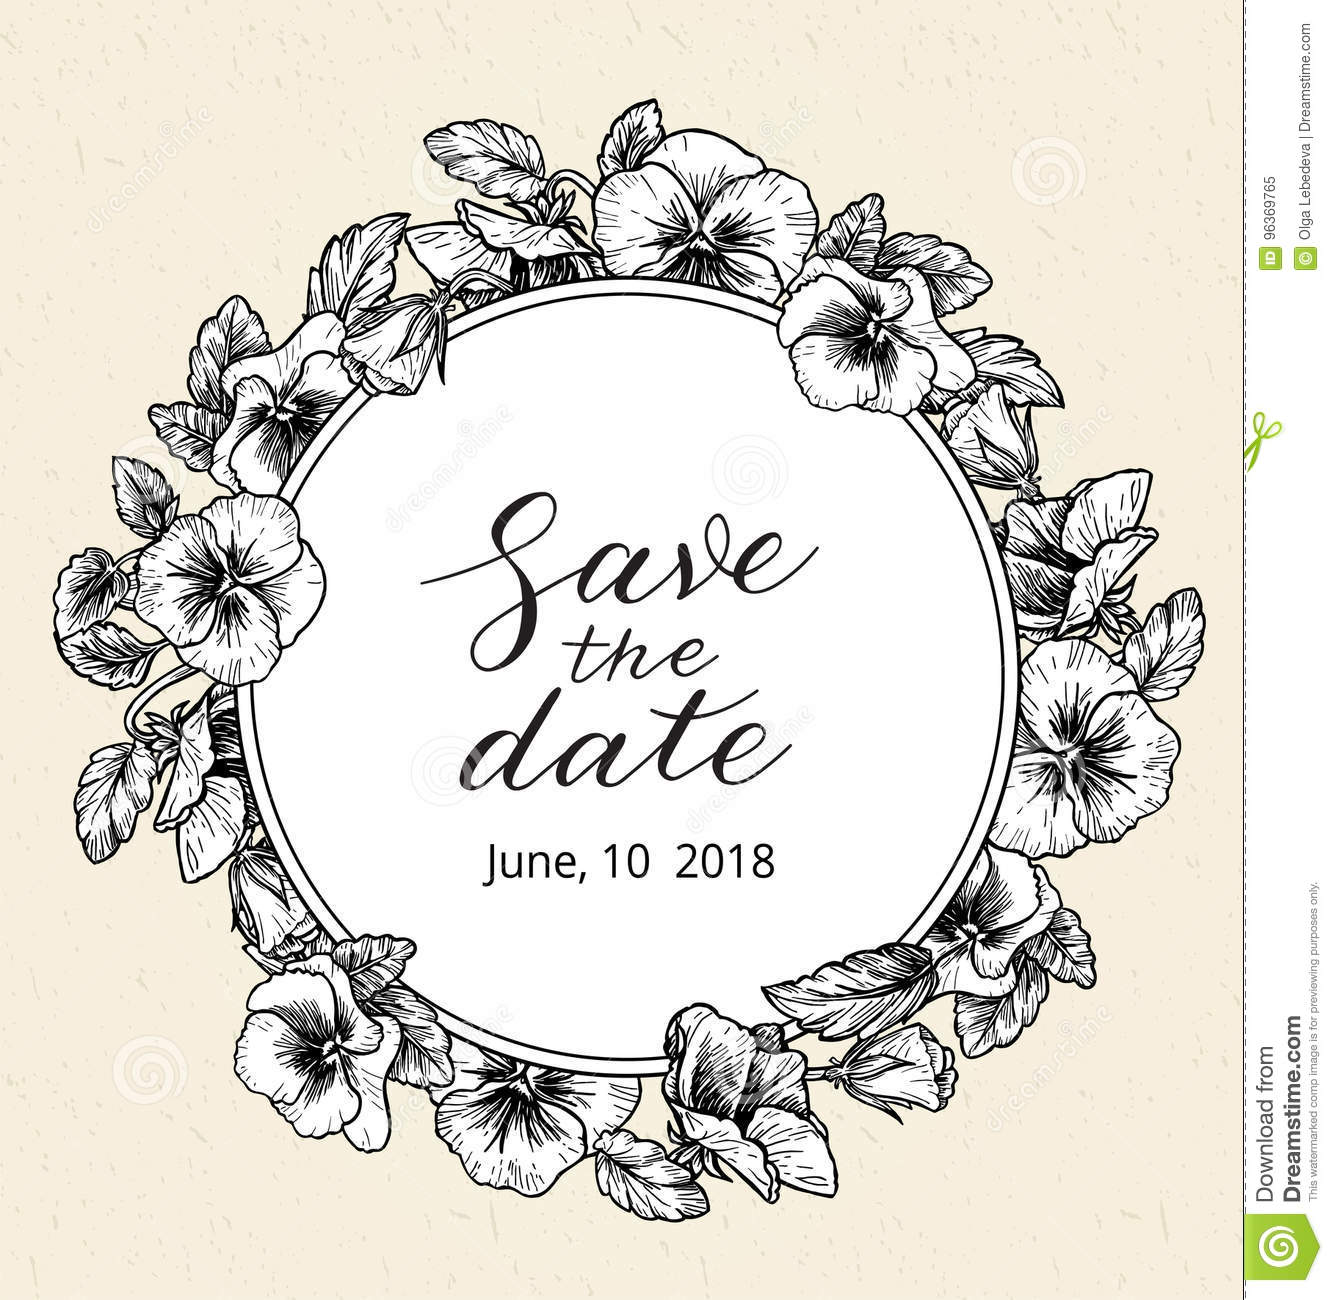 wedding invitation design template with save the date text and frame